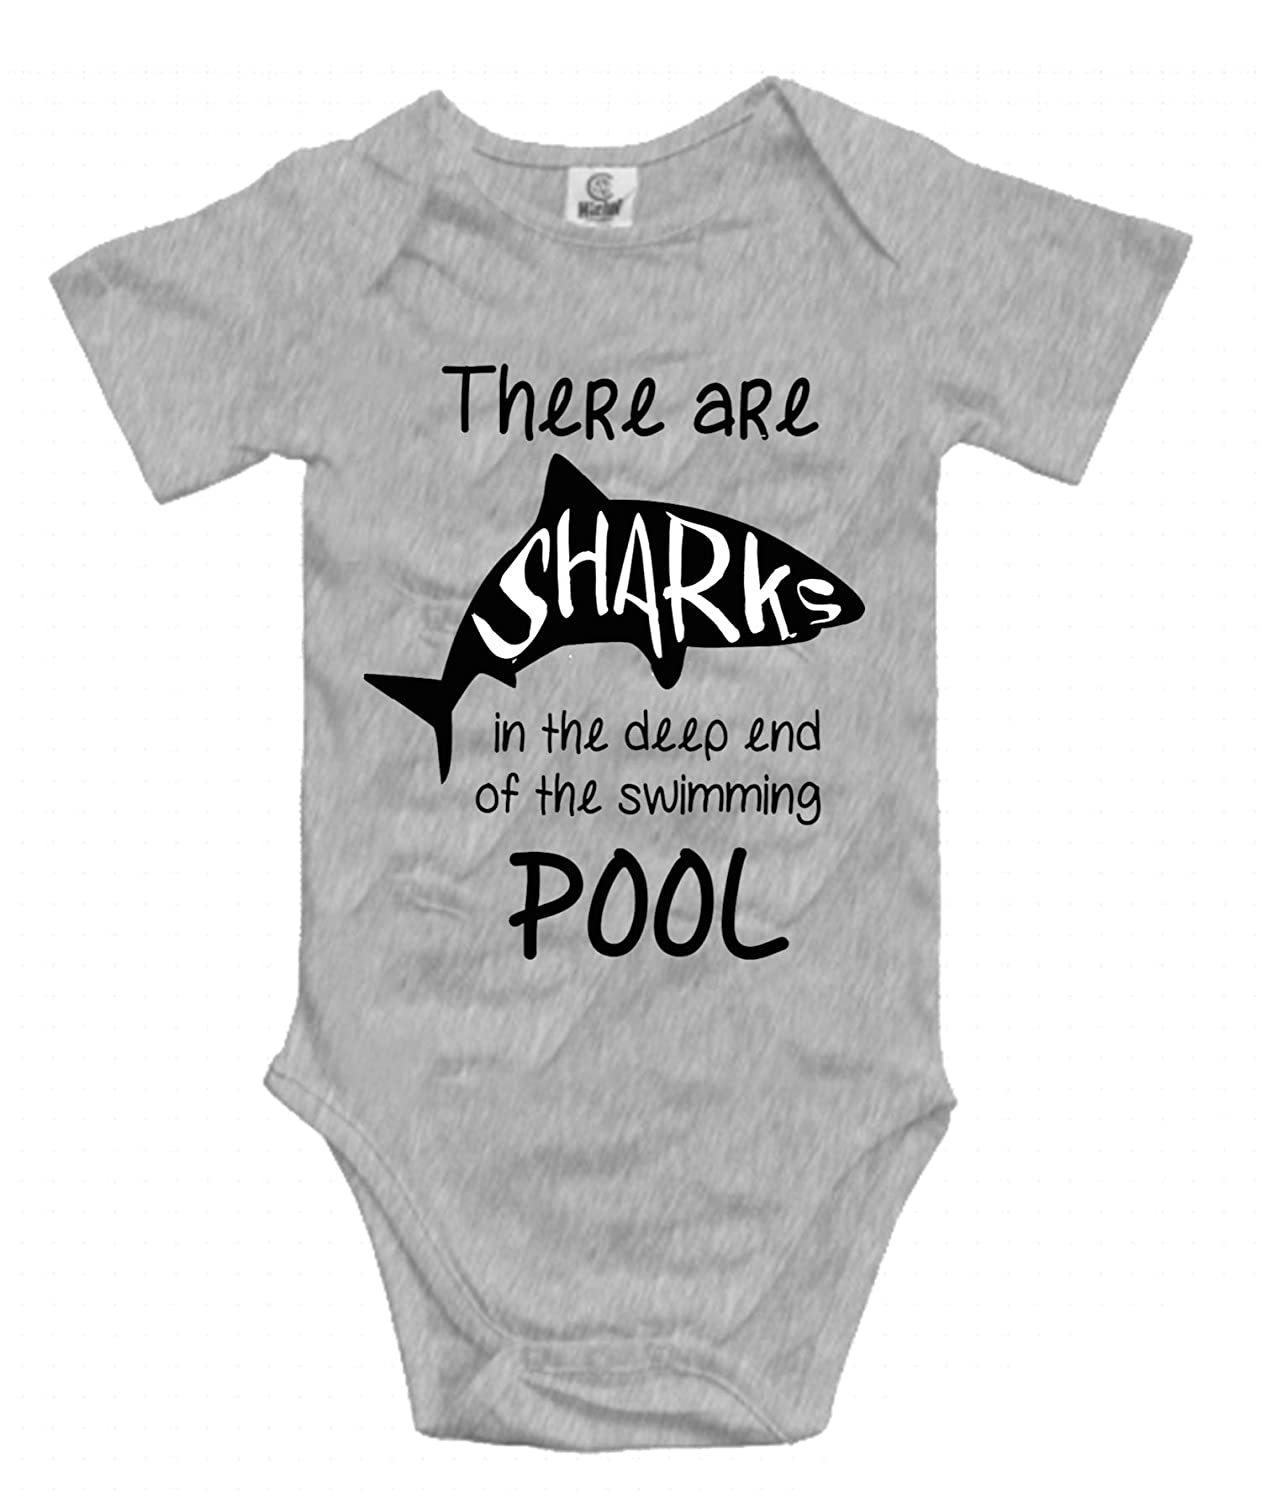 5c1962335509 Amazon.com  There are Sharks in The Deep End The Swimming Pool Unisex Baby  Short-Sleeve Onesies Cotton Bodysuits Infant Romper Clothes  Clothing